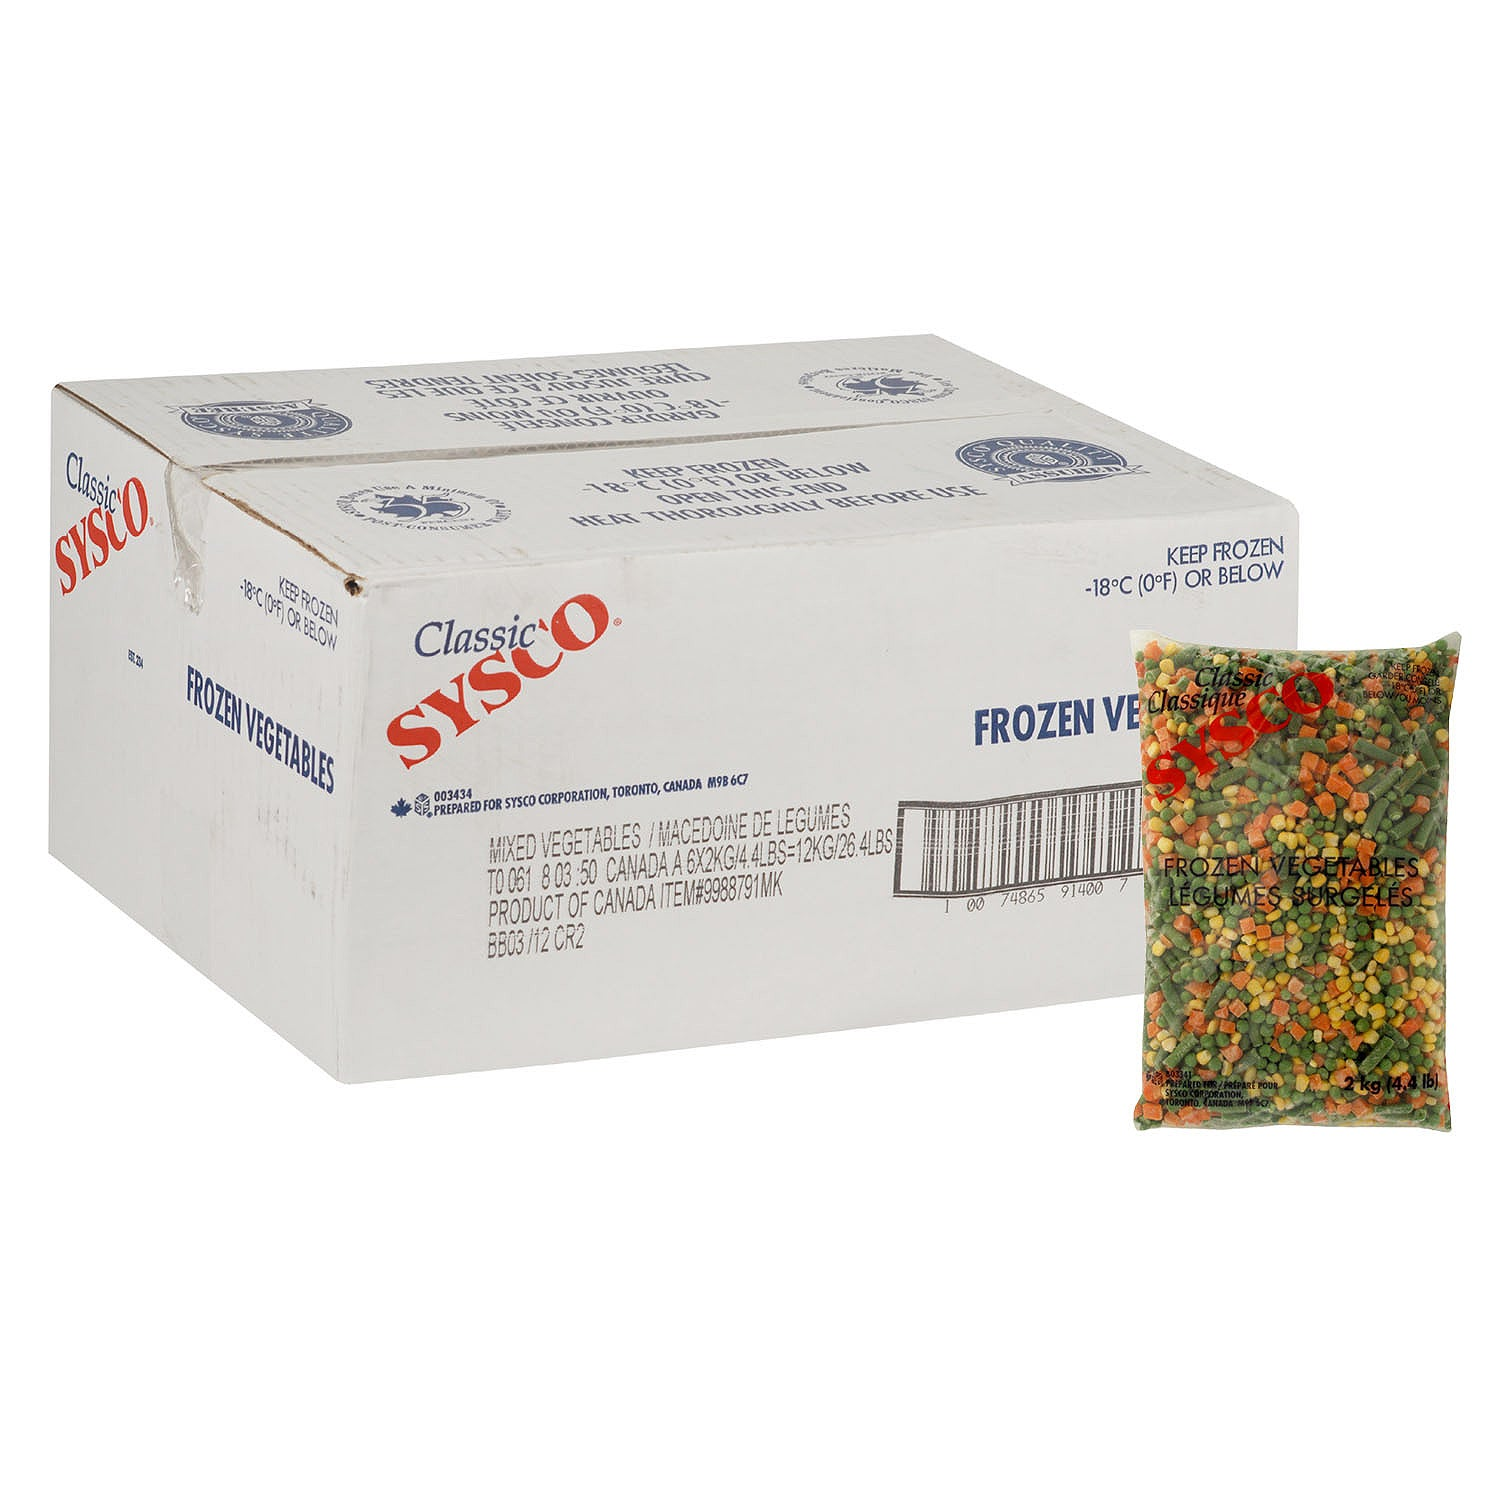 Sysco Classic Frozen Vegetable Mix 4 Way (Carrots/Corn/Peas/Green & Wax Beans) 2 kg - 6 Pack [$3.33/kg]